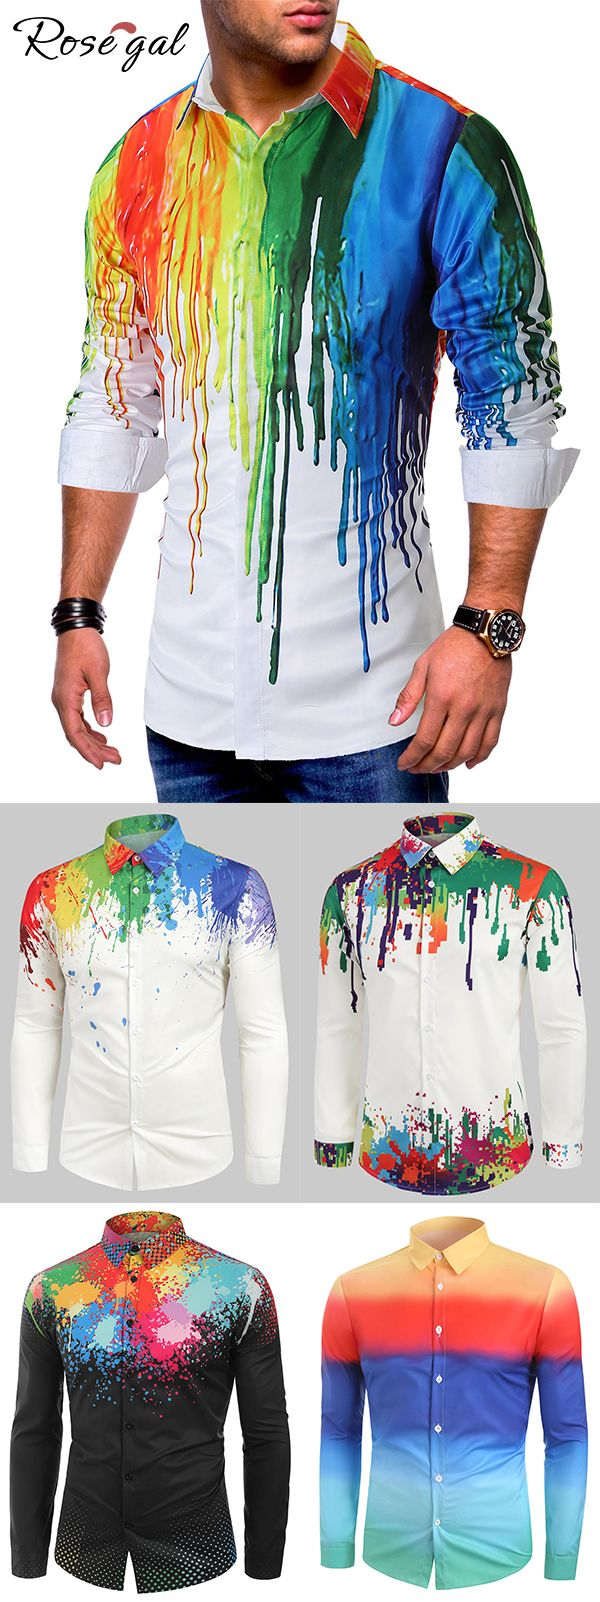 Rosegal Colorful Painting Splatter Print Long Sleeves Casual Shirt mens outfits ideas